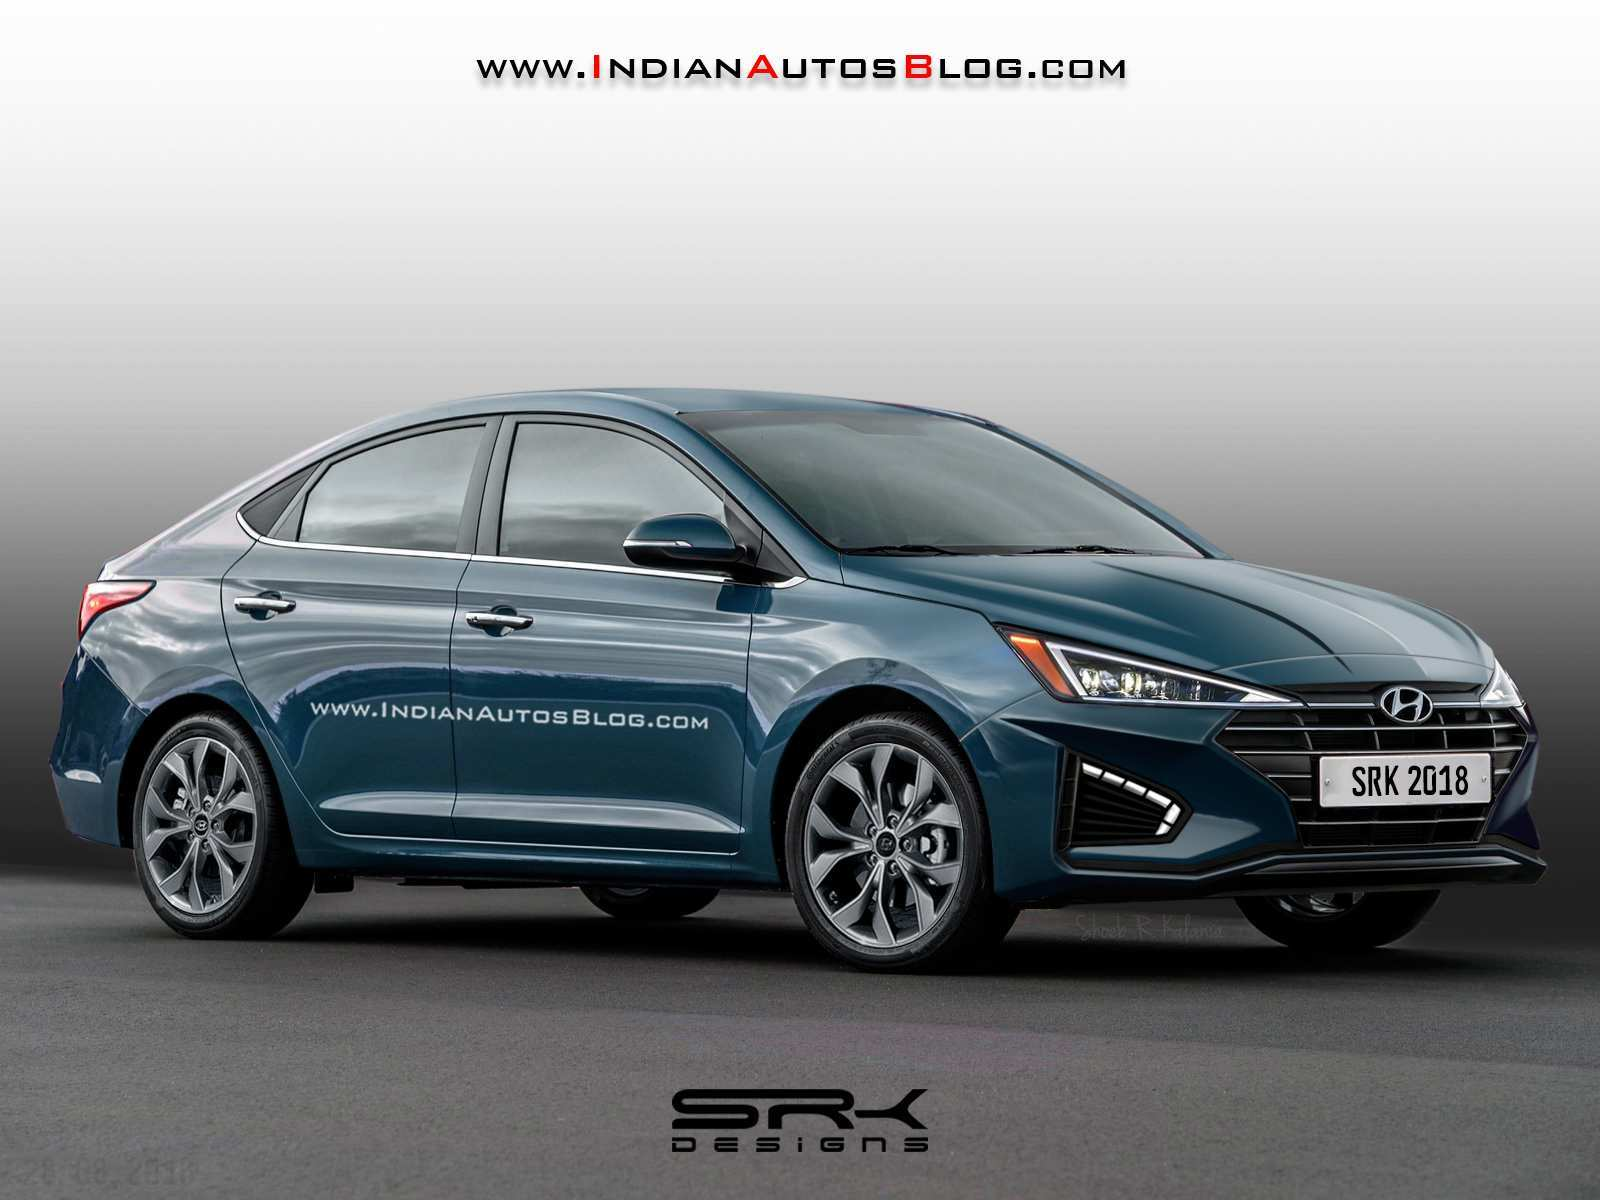 70 The Best Hyundai Verna Facelift 2020 Review And Release Date